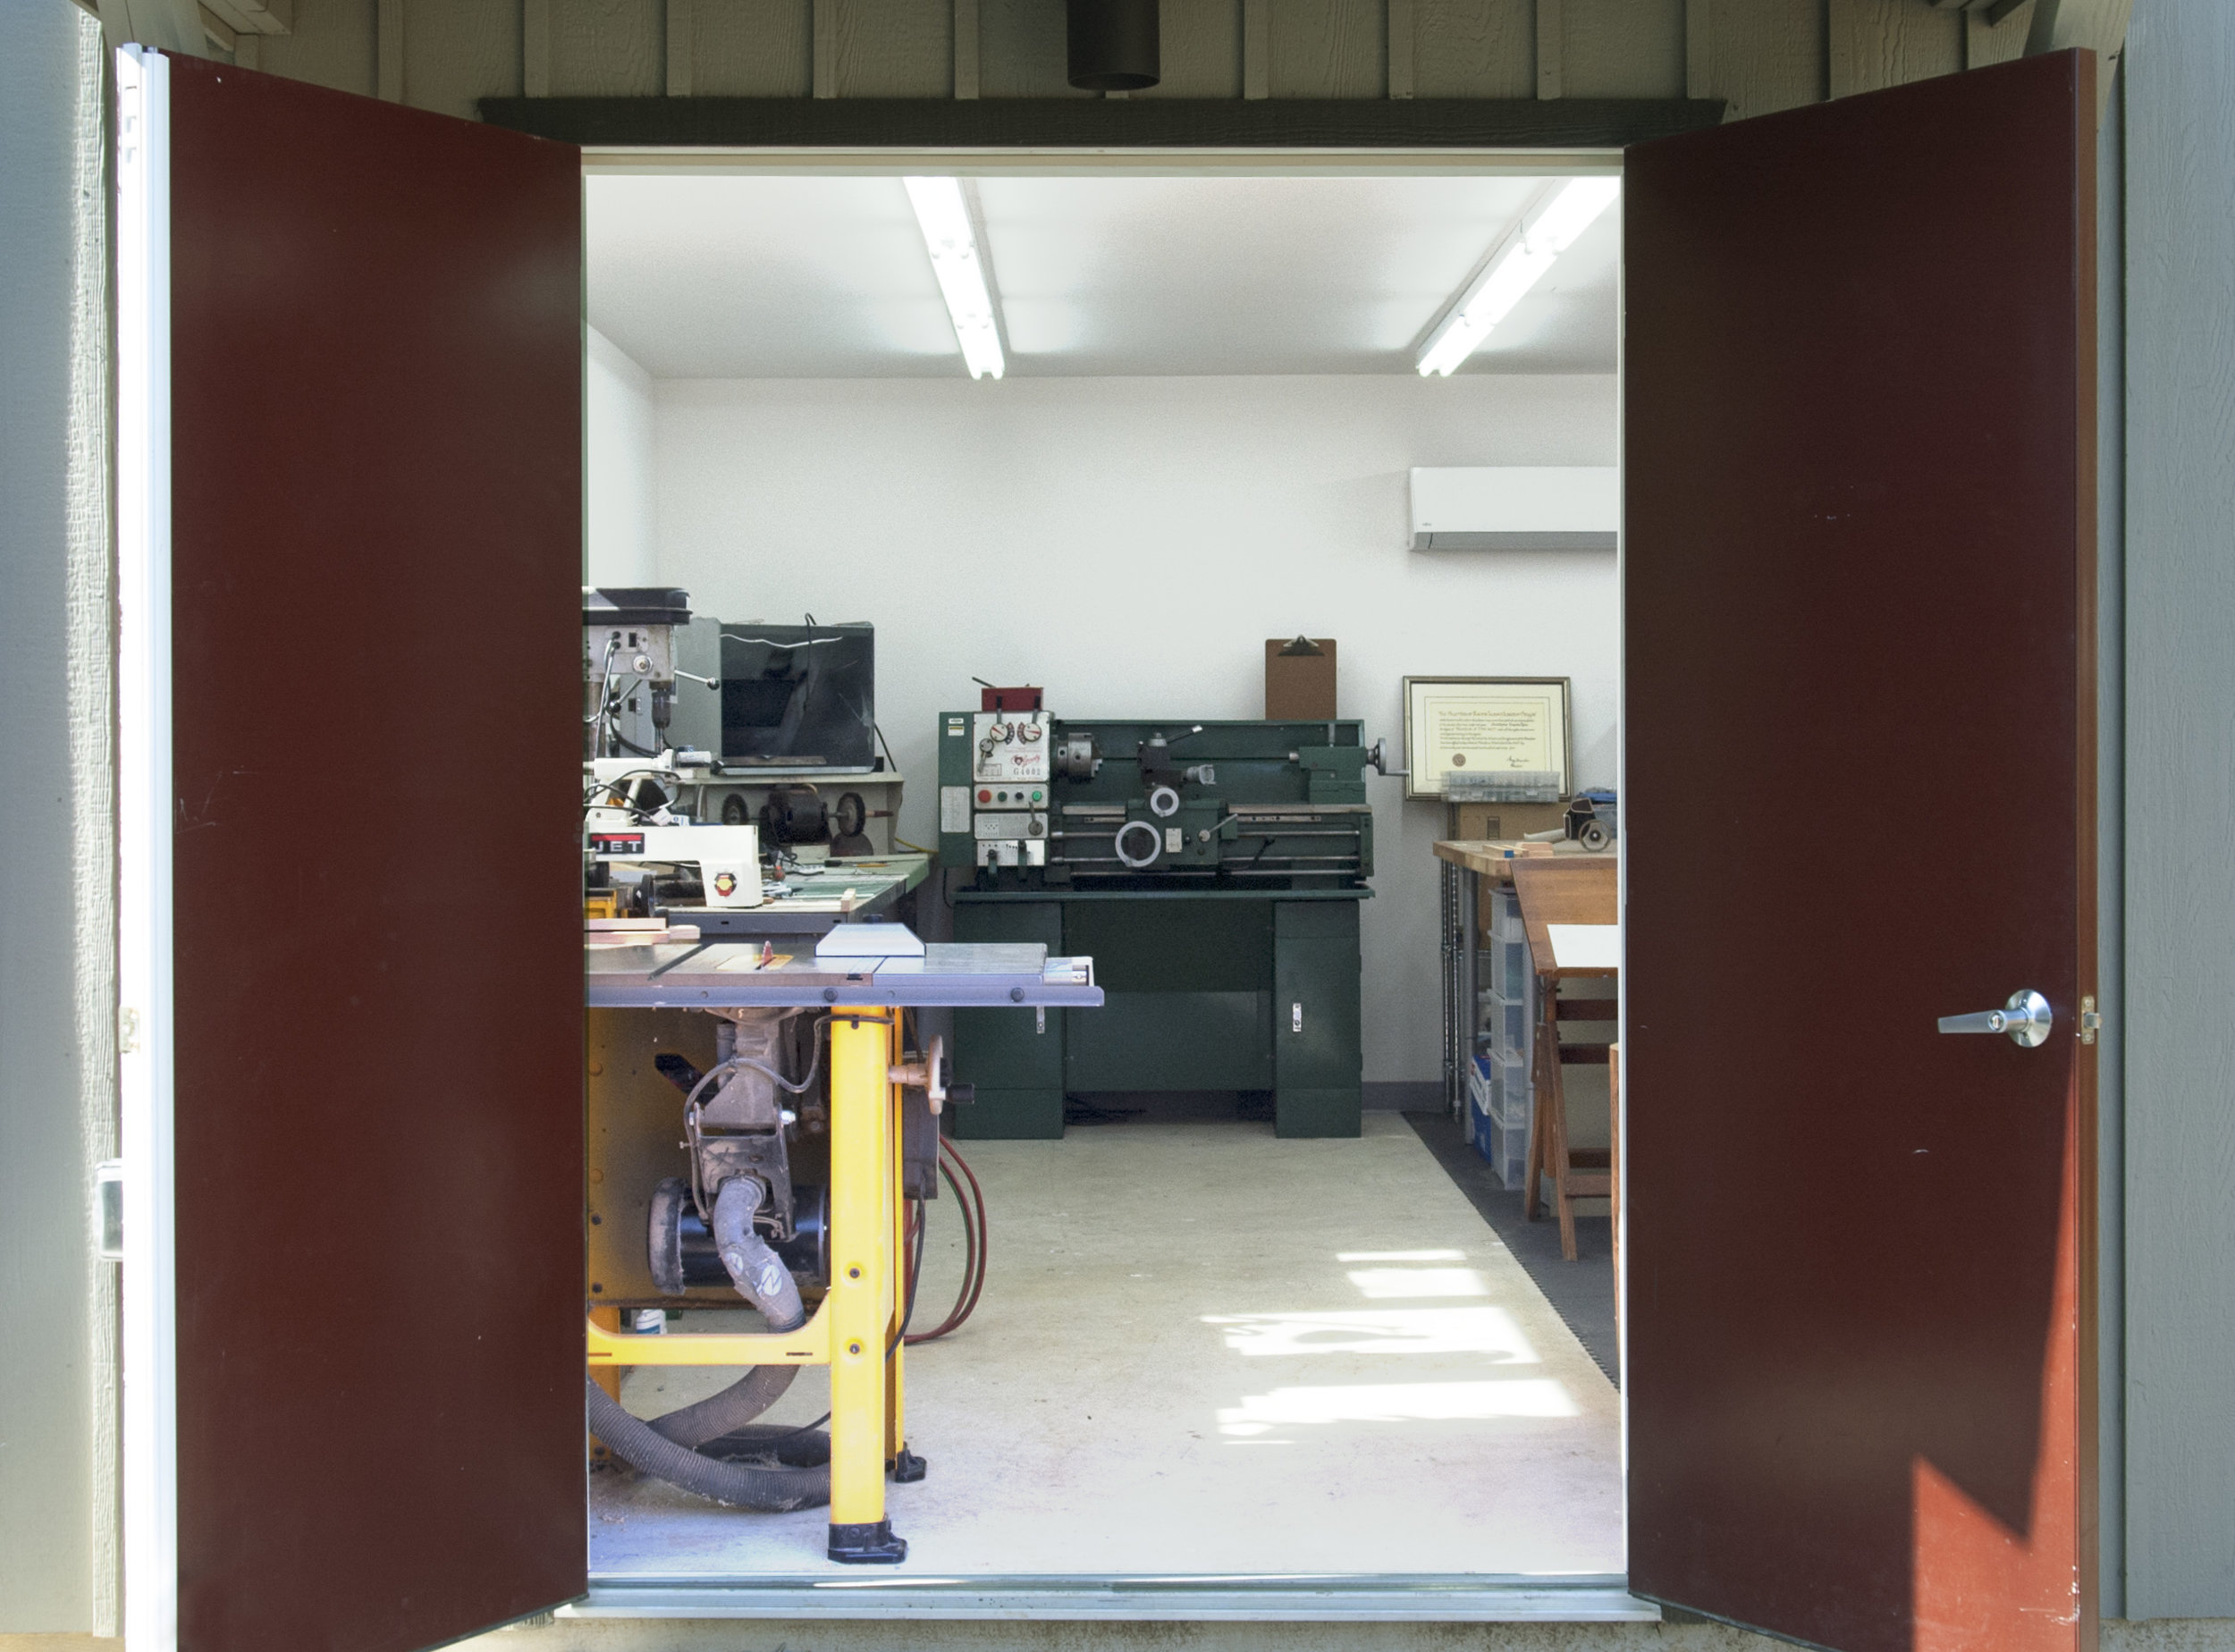 When Chris needs to cut a long piece of wood on the table saw, we move the table saw over and open the doors. You can see our new-­‐to-­‐us green metal lathe against the back wall. Andy's studio is off to the right.